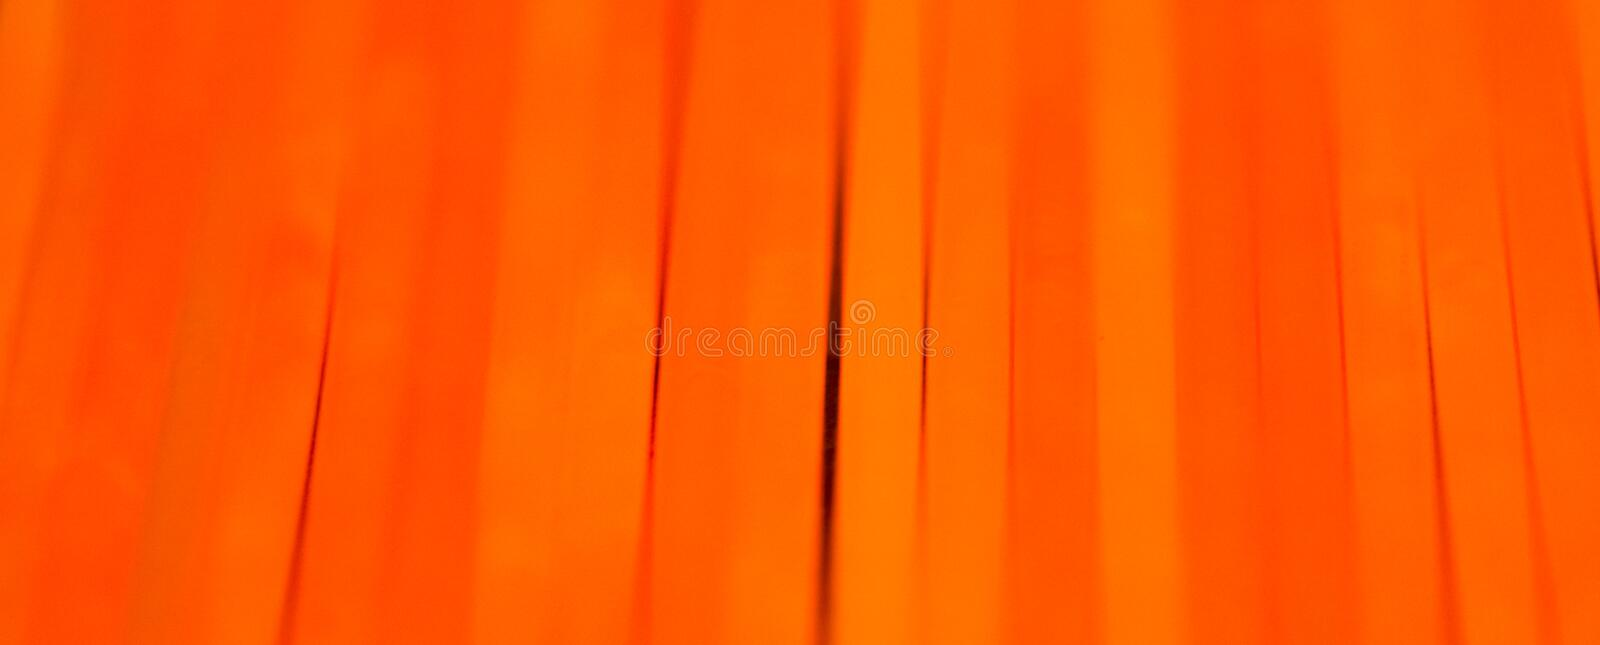 Orange fluorescent chem light neon black background. Orange colorful colored fluorescent chem light neon tube with reflection on mirror with black background royalty free stock photography